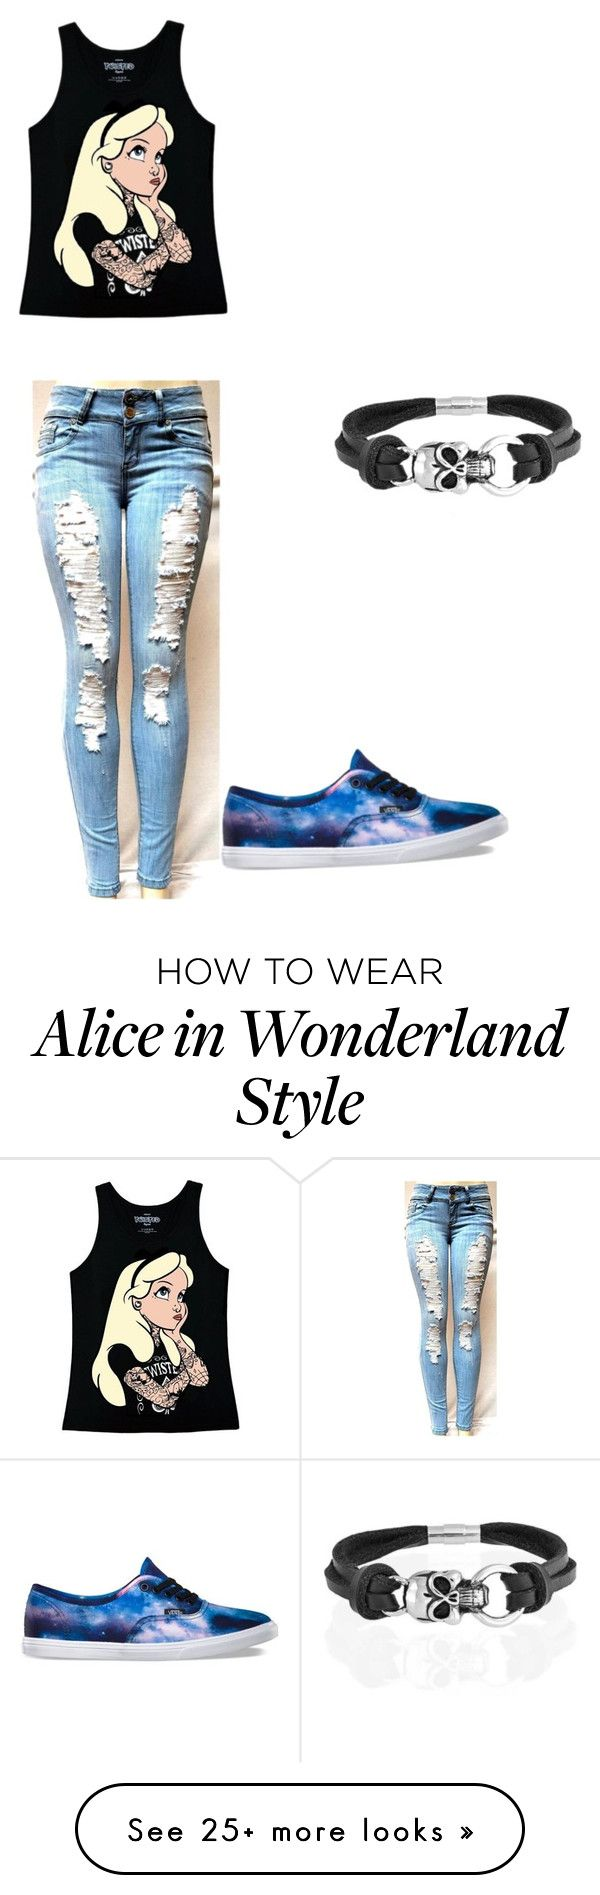 """Untitled #82"" by emmi-coconuthead on Polyvore featuring Disney, Vans and Bling Jewelry"